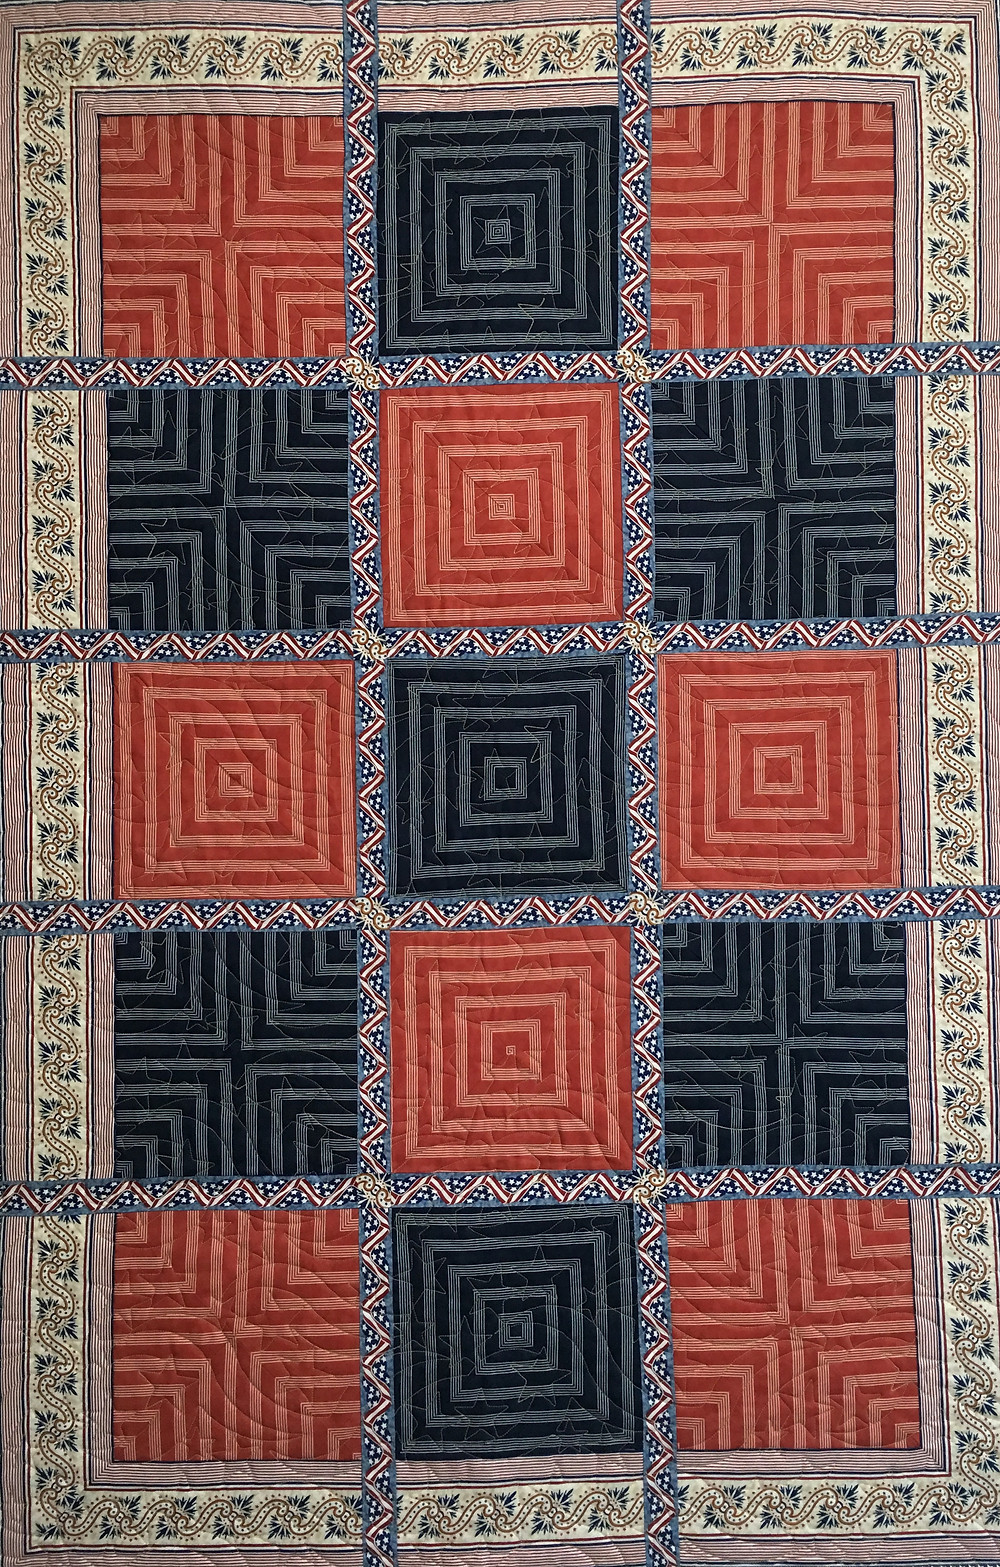 Americana Quilt version by Penny Wheat